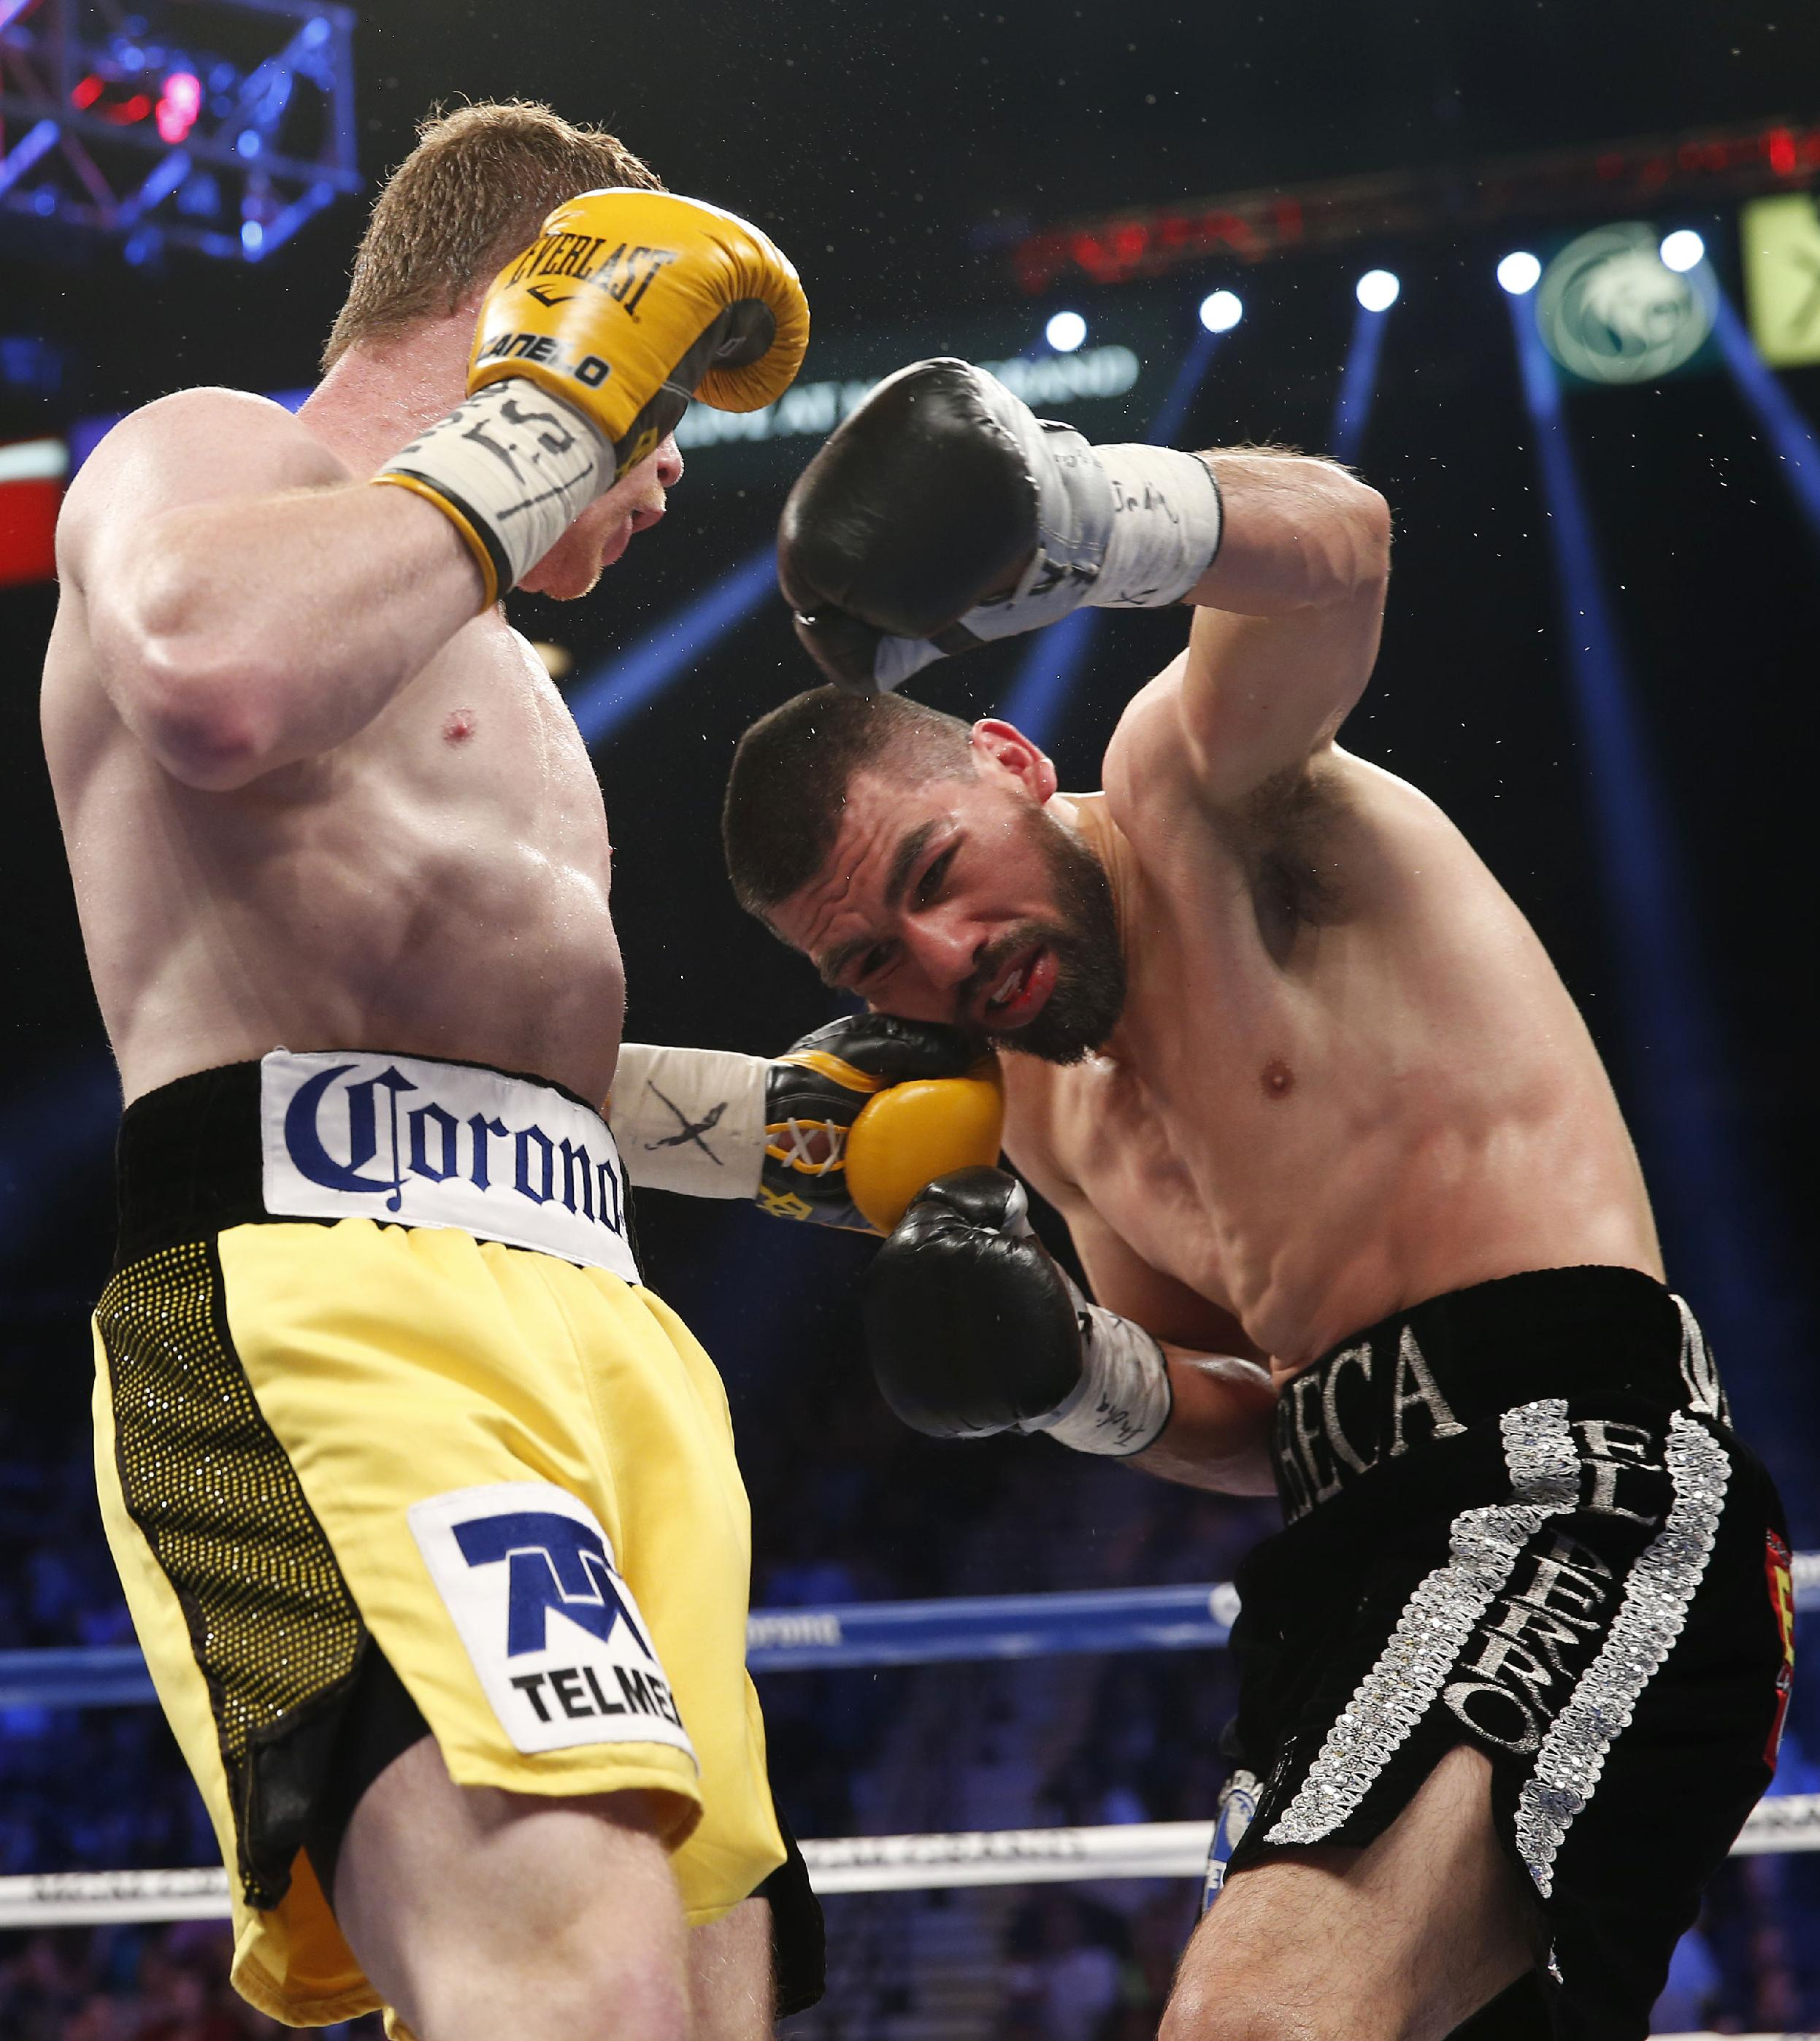 Saul Alvarez of Guadalajara Mexico, left, trades punches with Alfredo Angulo of Mexicali Mexico during their super welterweight boxing match, Saturday, March 8, 2014, at The MGM Grand Garden Arena in Las Vegas. Alvarez won by TKO when the fight was stopped by referee Tony Weeks